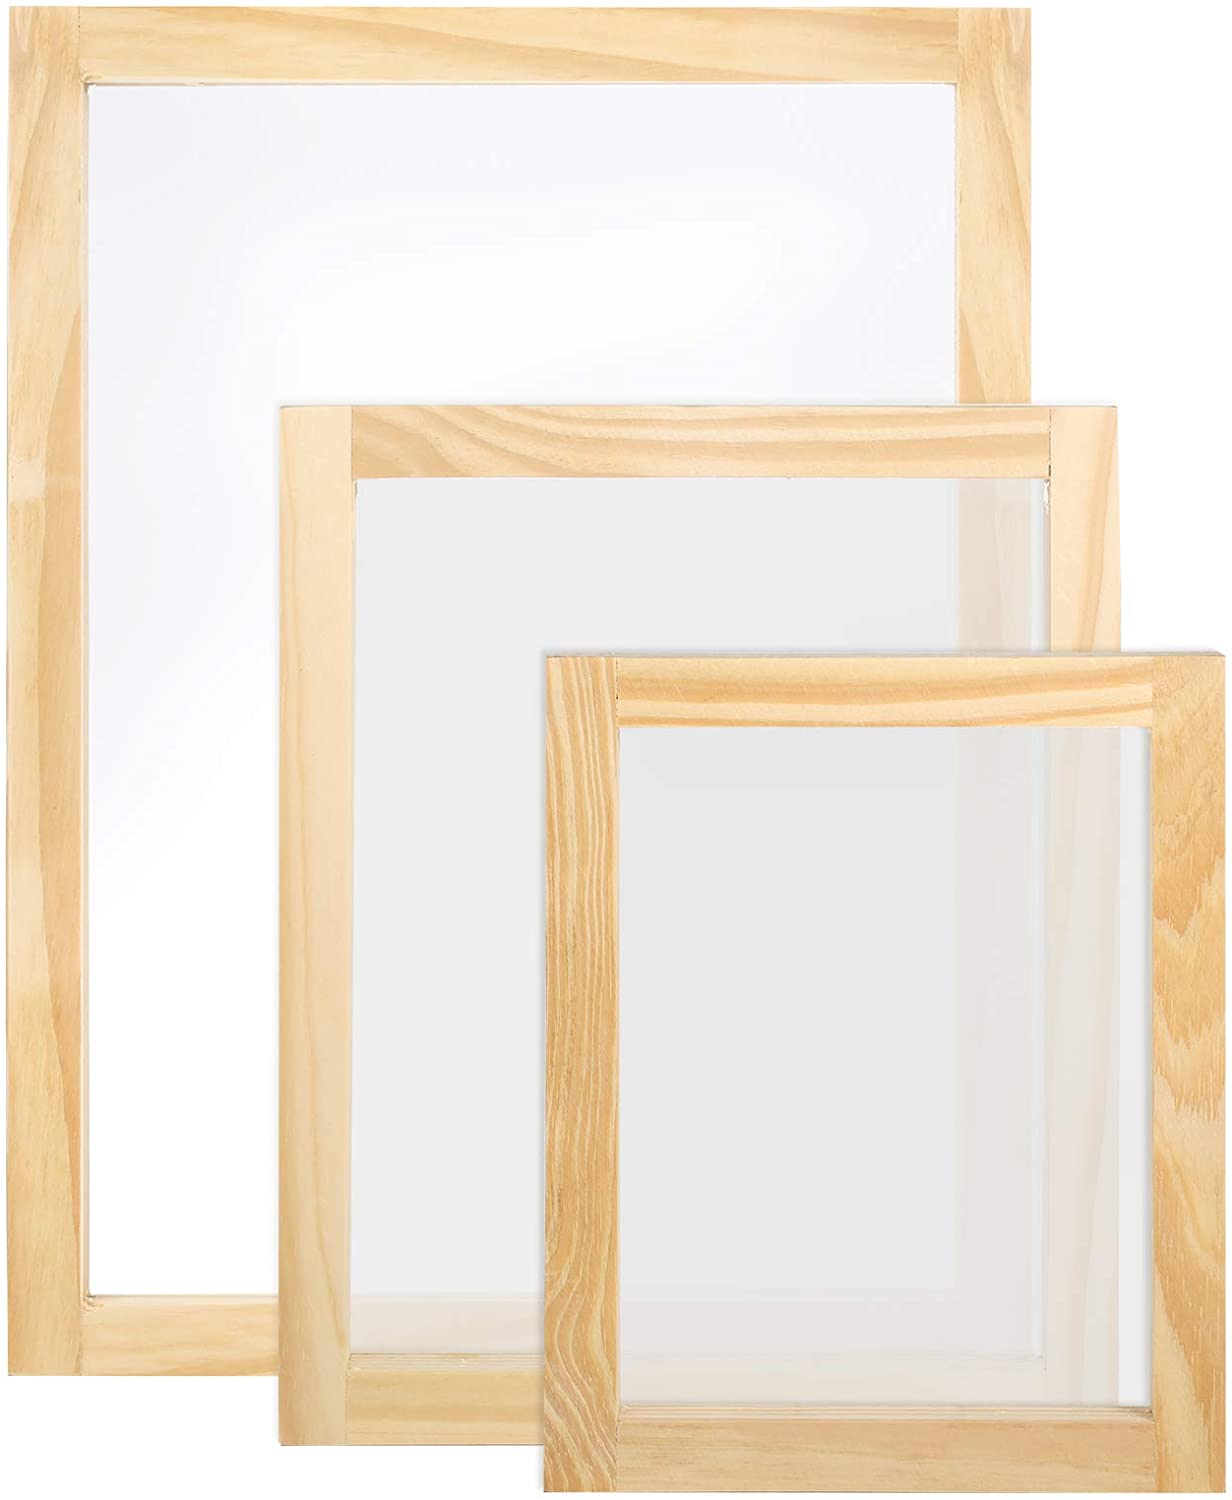 Caydo 3 Pieces Size Wood Silk Very popular! Beauty products Screen with Frame Printing Mesh